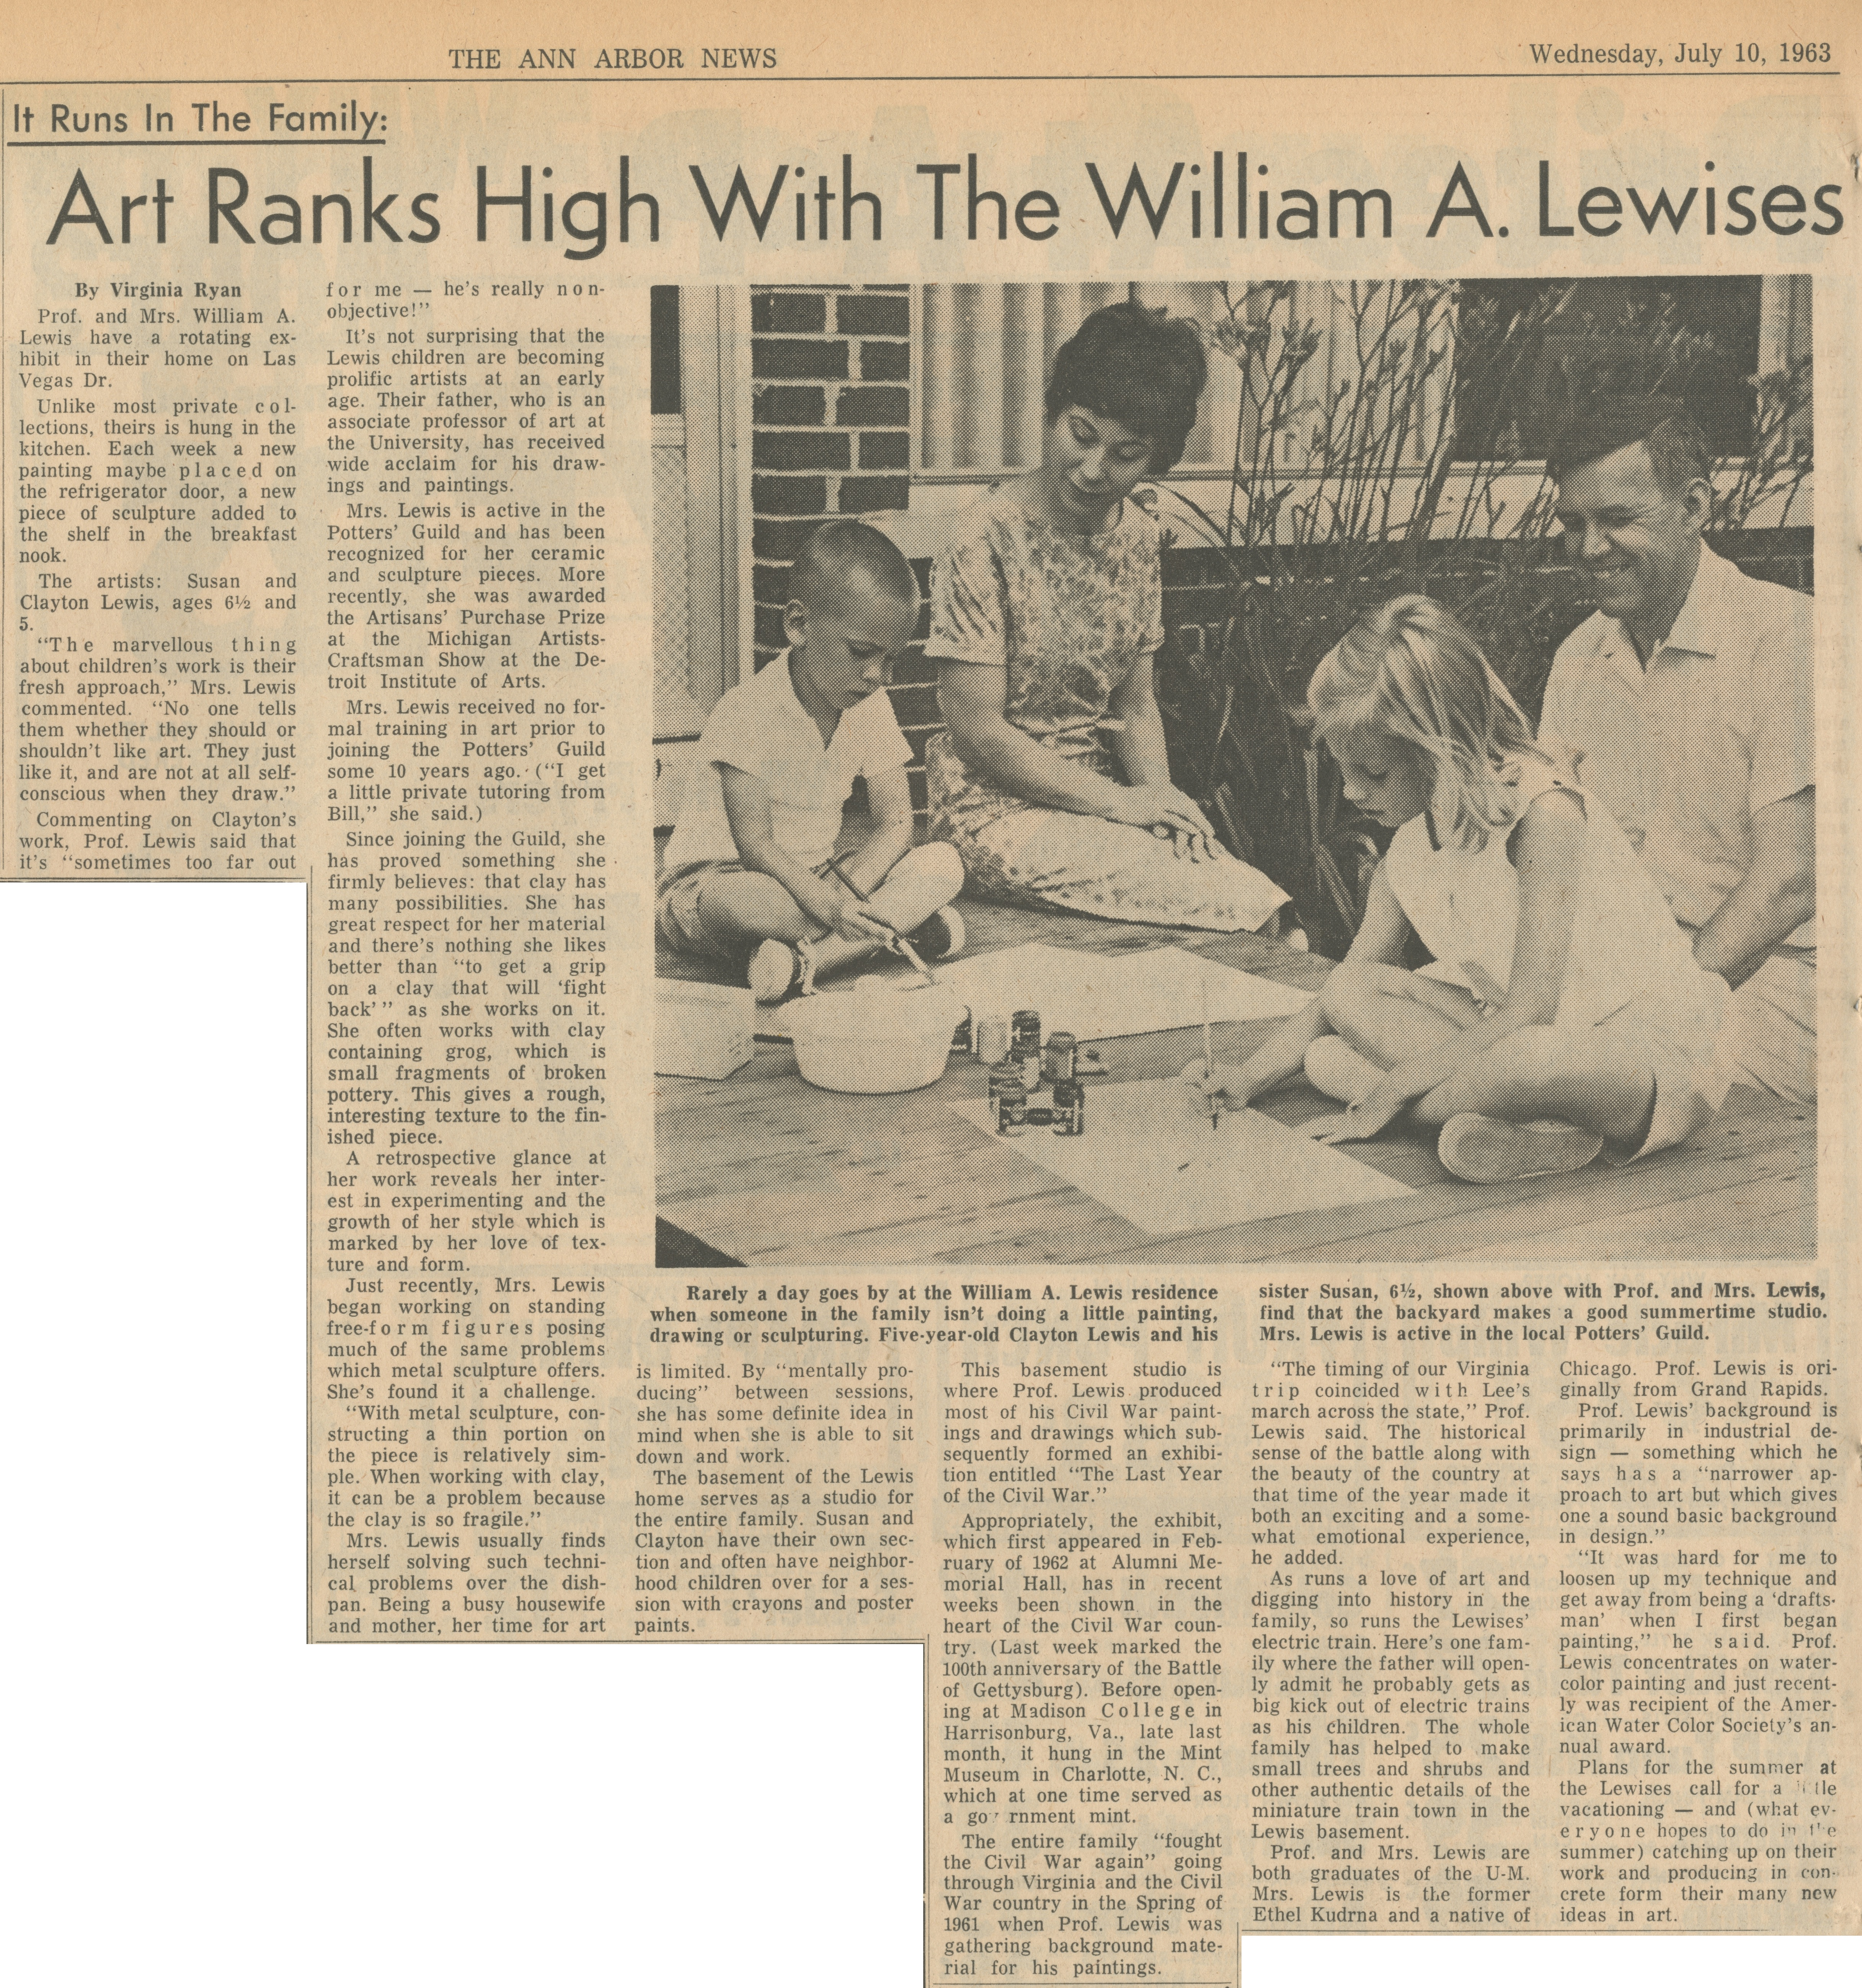 Art Ranks High With The William A. Lewises image